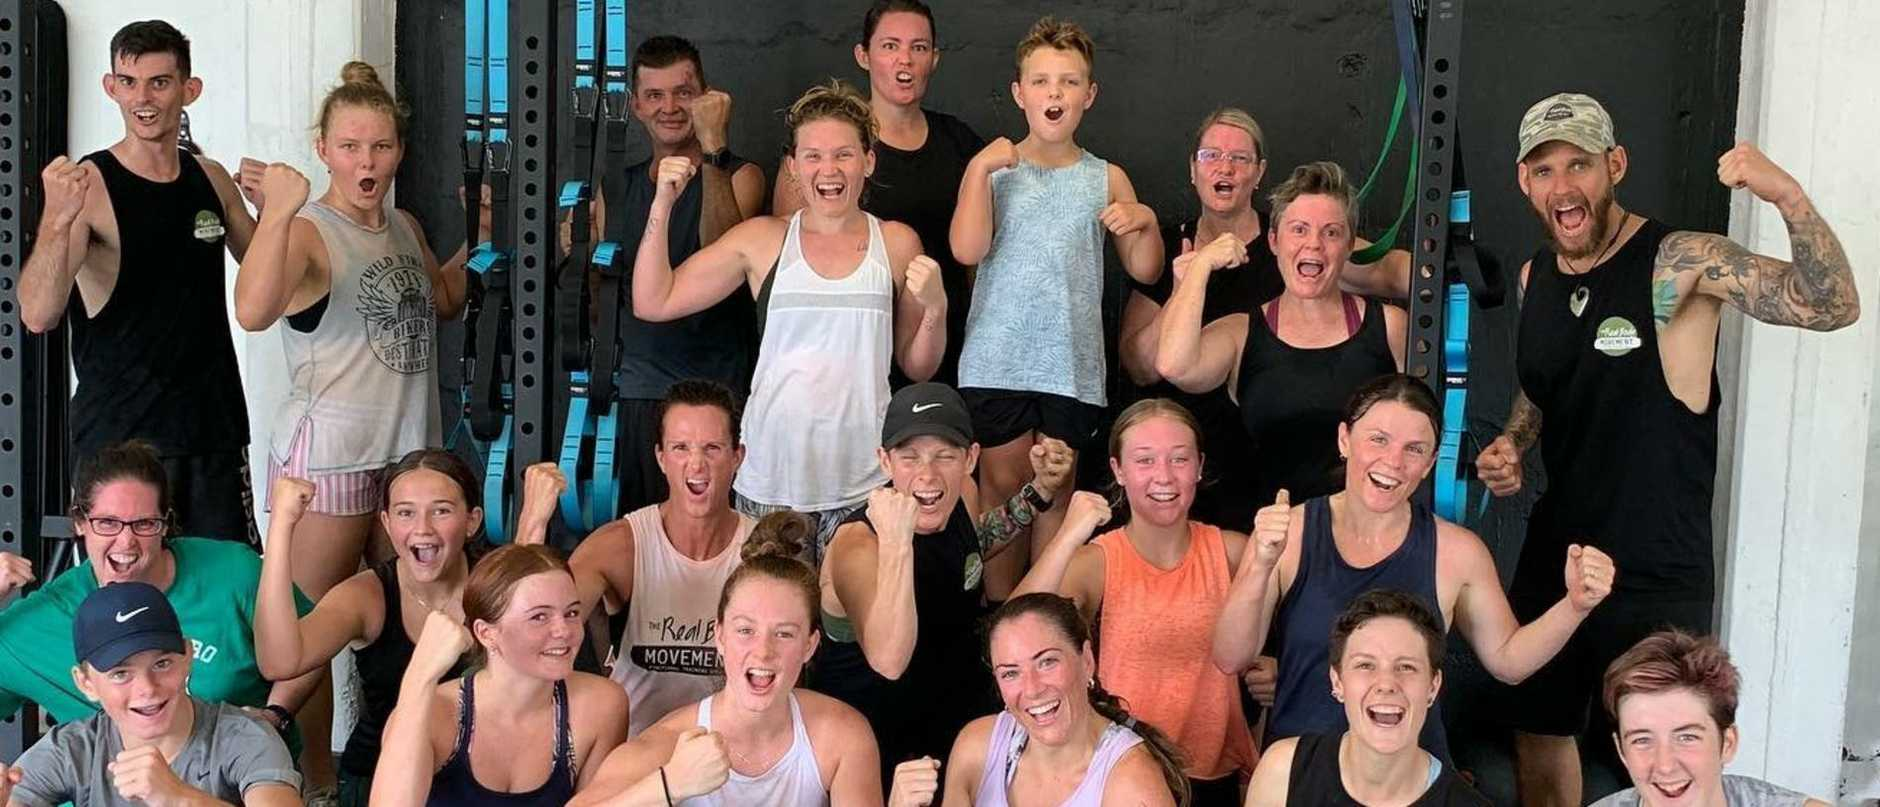 Gympie gym The Real Body Movement community has had to move to online classes after the gym was closed on Monday. BACK FROM LEFT: Harrison Parker, Mackenzie Keable, Tony Dotta, Kyl Schoenmakers, Cara Shrimpton, Jonah Frampton, Kylie Long, Wendy Frampton, Matt Keable MIDDLE FROM LEFT: Cassie Ledger, Mahalia Bower, Bec Duggan, Fiona Keable, Monique Webbe, Liz Cruikshank. FRONT FROM LEFT: Jimi Dugga